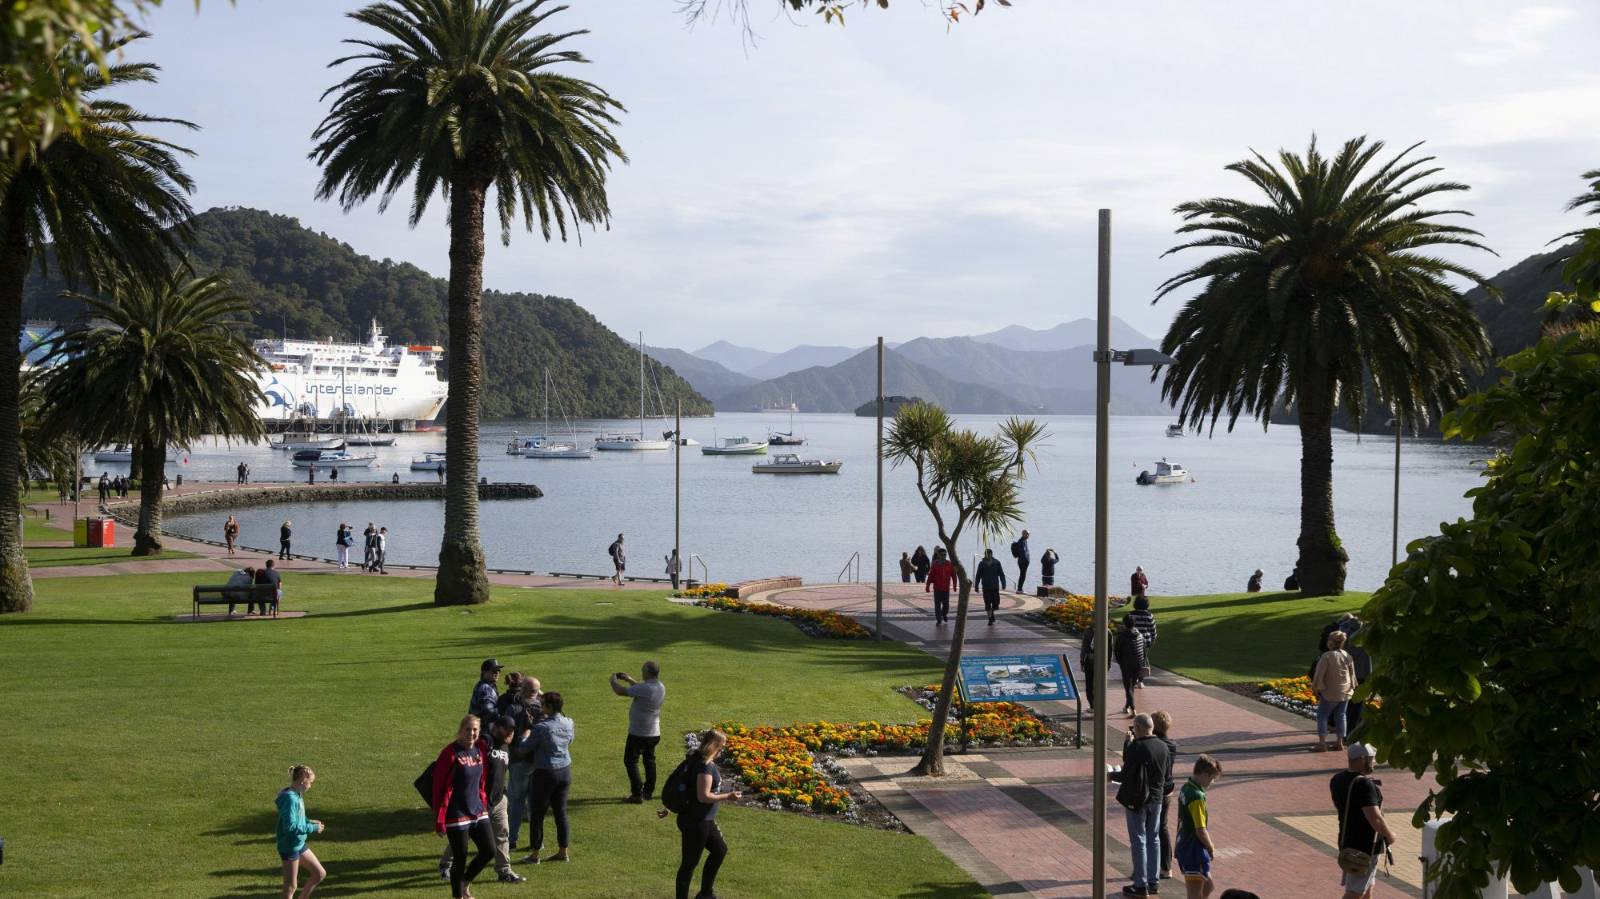 With cruise ships gone, the quiet turns to disquiet as Picton plans its future